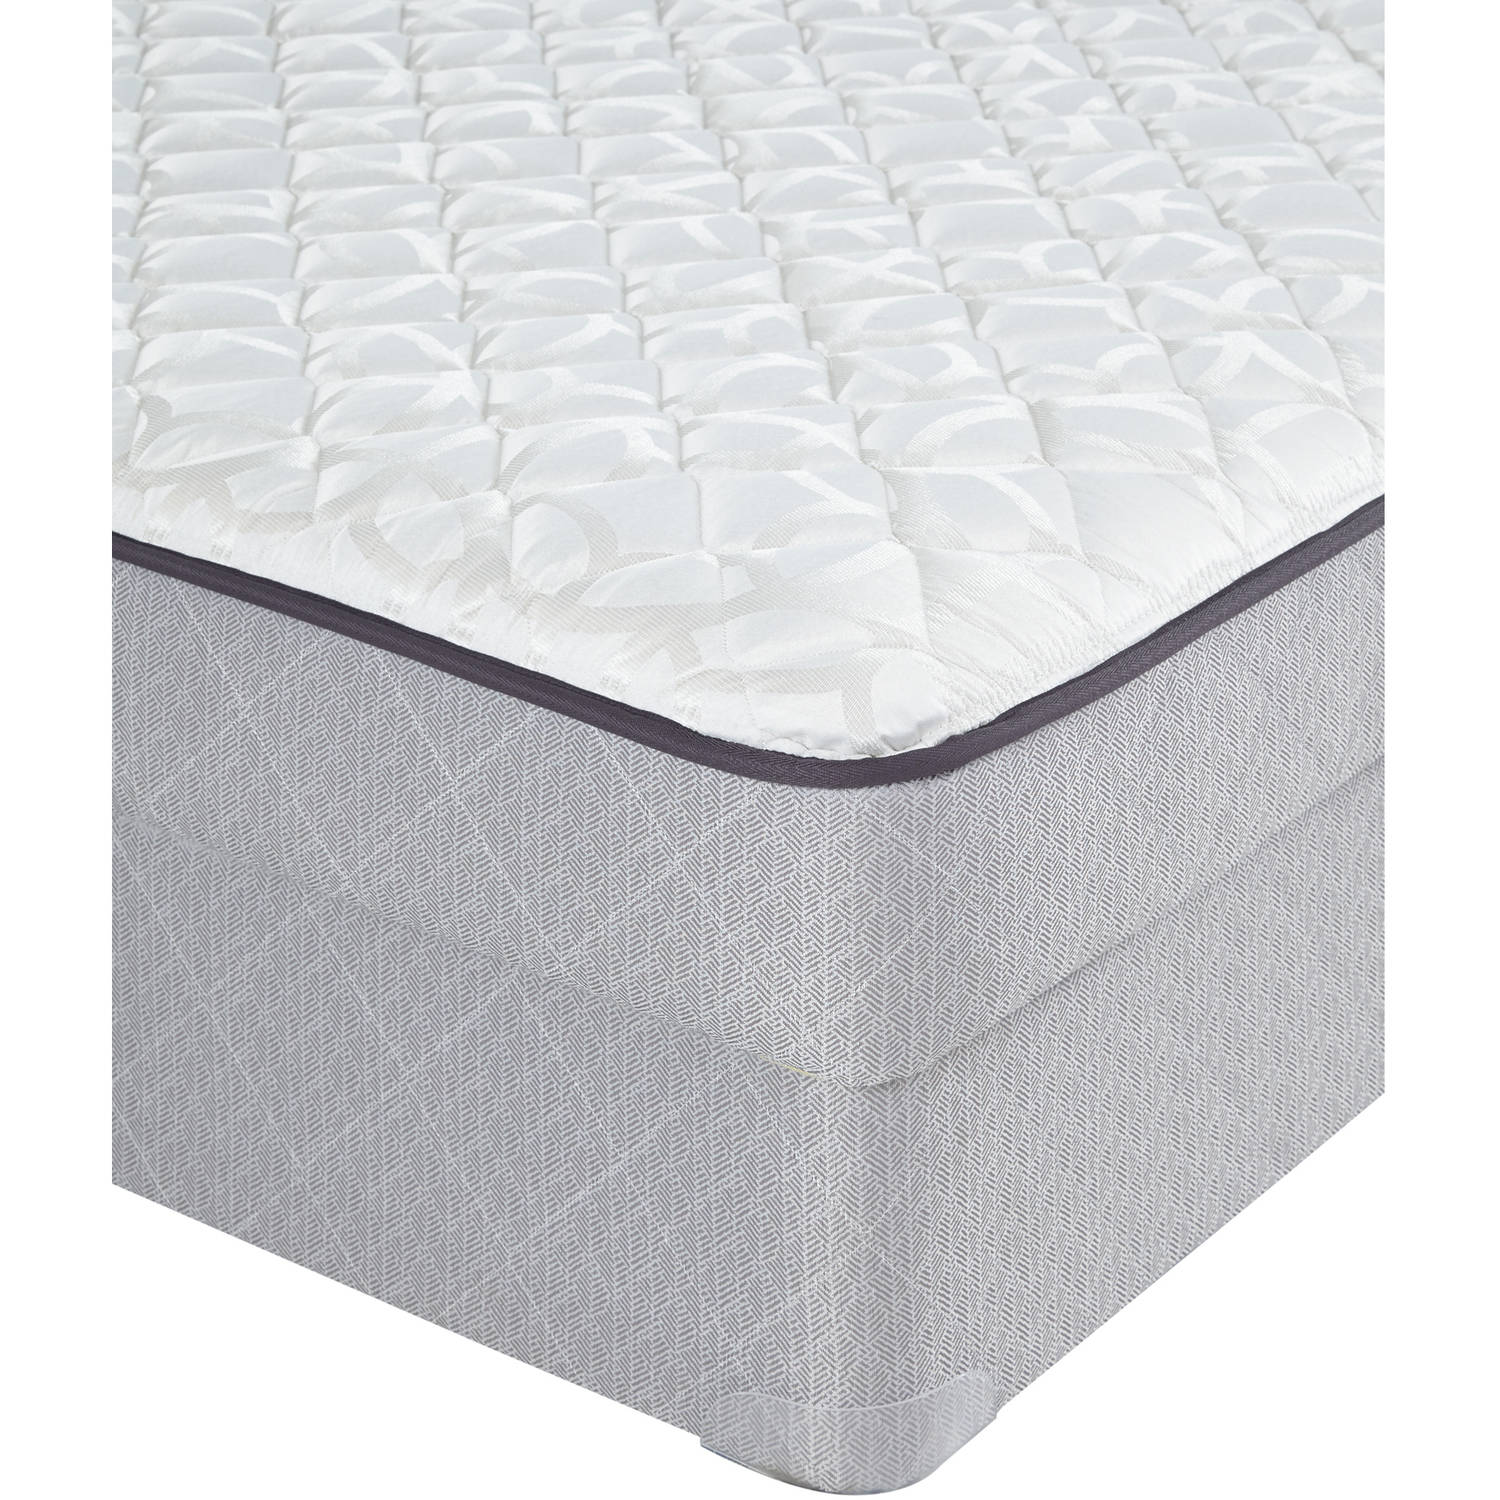 img roma top delivery sealy htm next day pillow single p free hover home to mattress pocket zoom